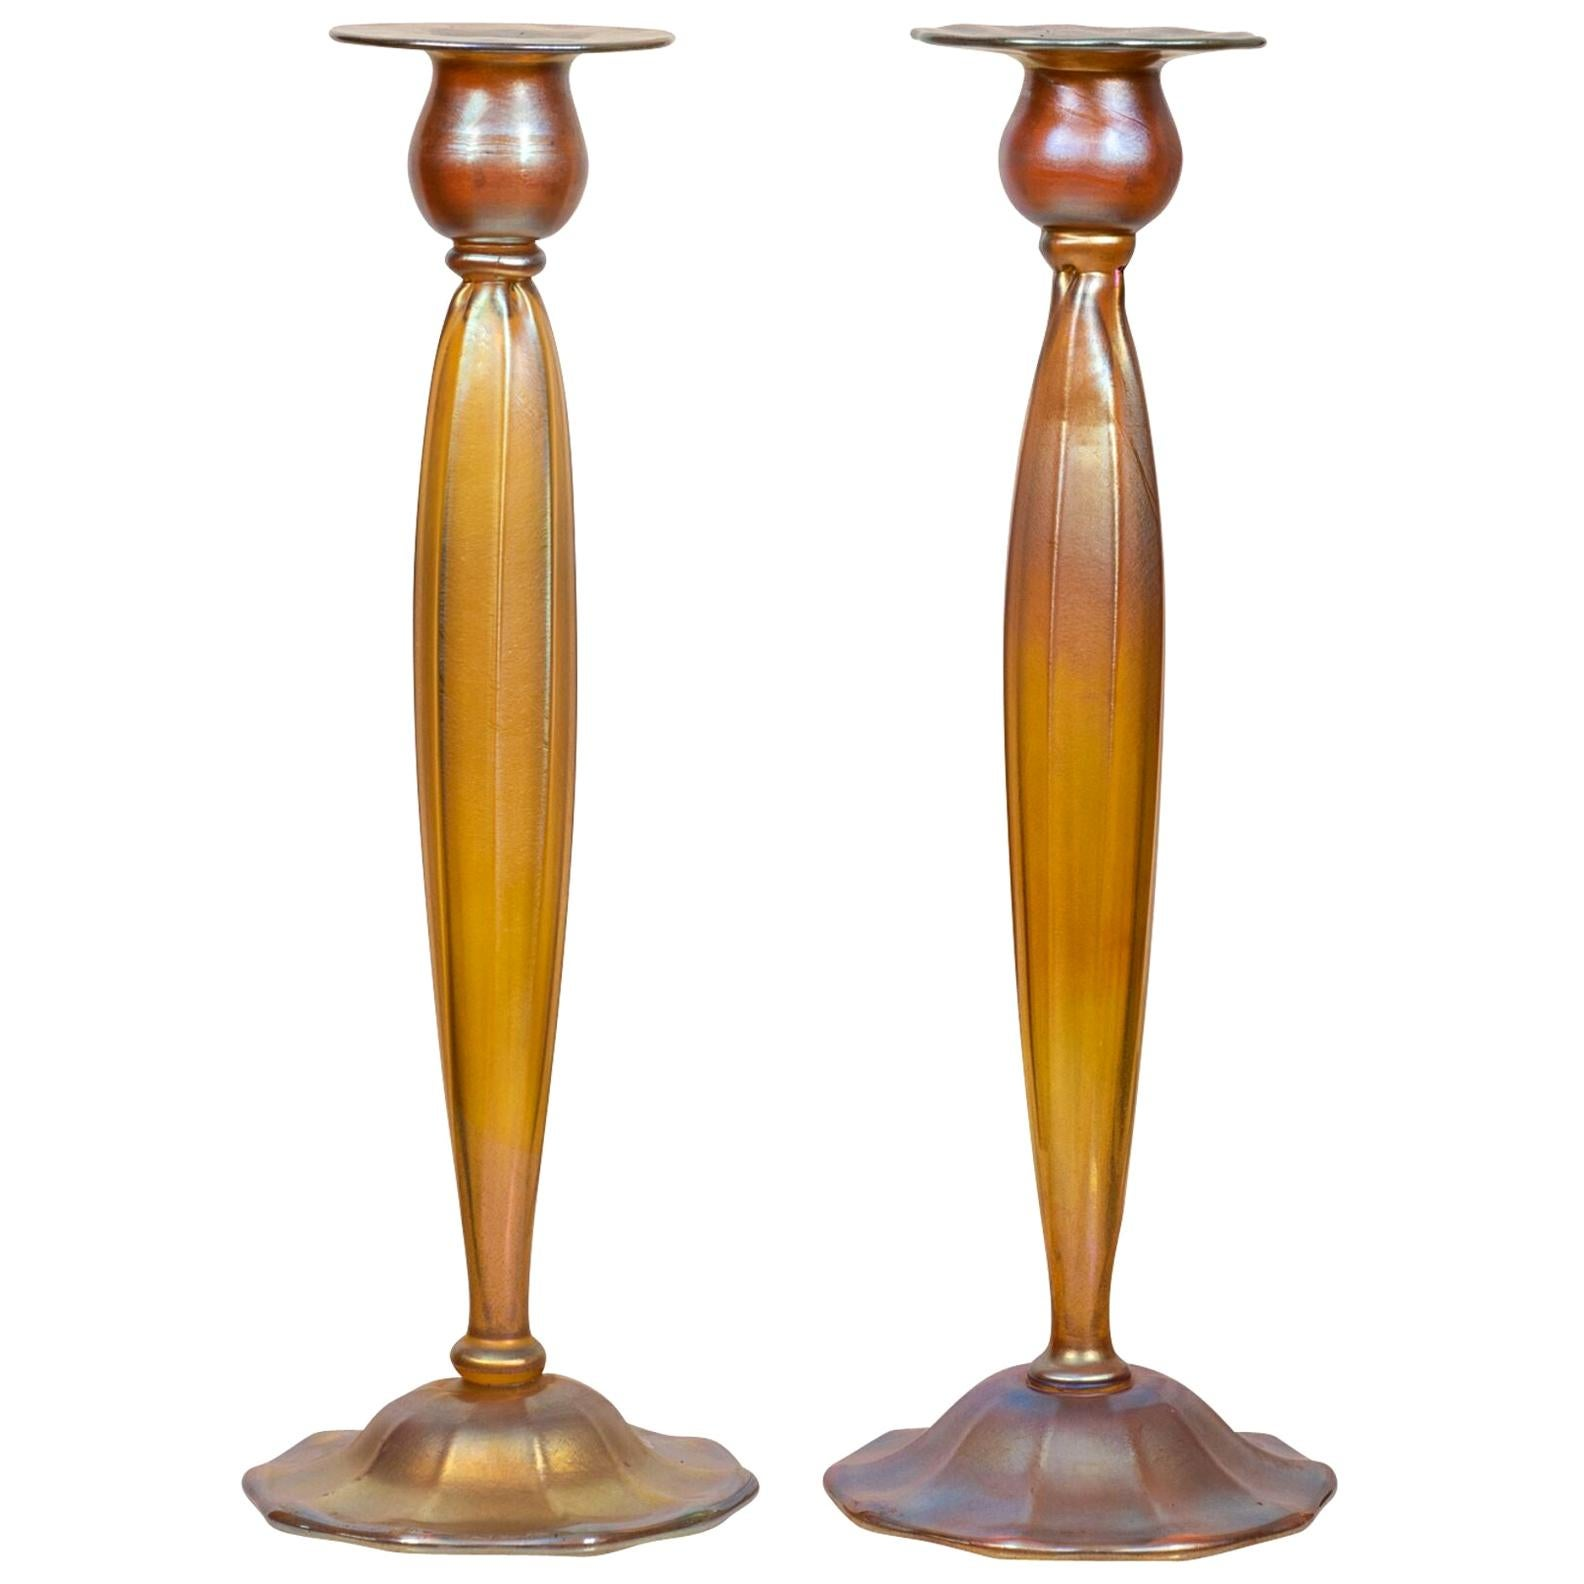 Pair of Tiffany Favrile Glass Candlesticks by Tiffany Studios